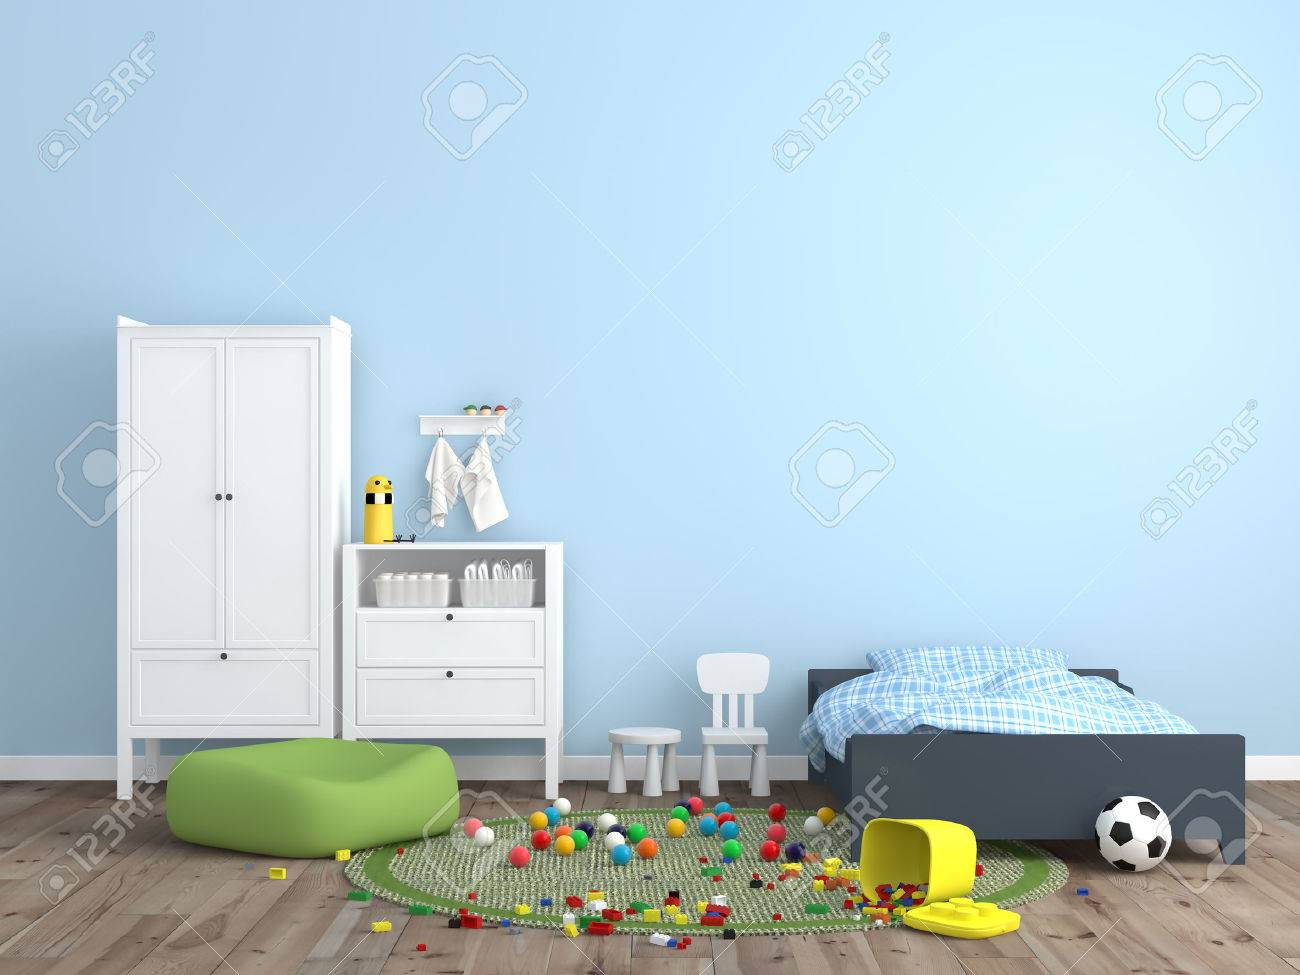 Alcove In The Wall Stock Photos. Royalty Free Alcove In The Wall Images